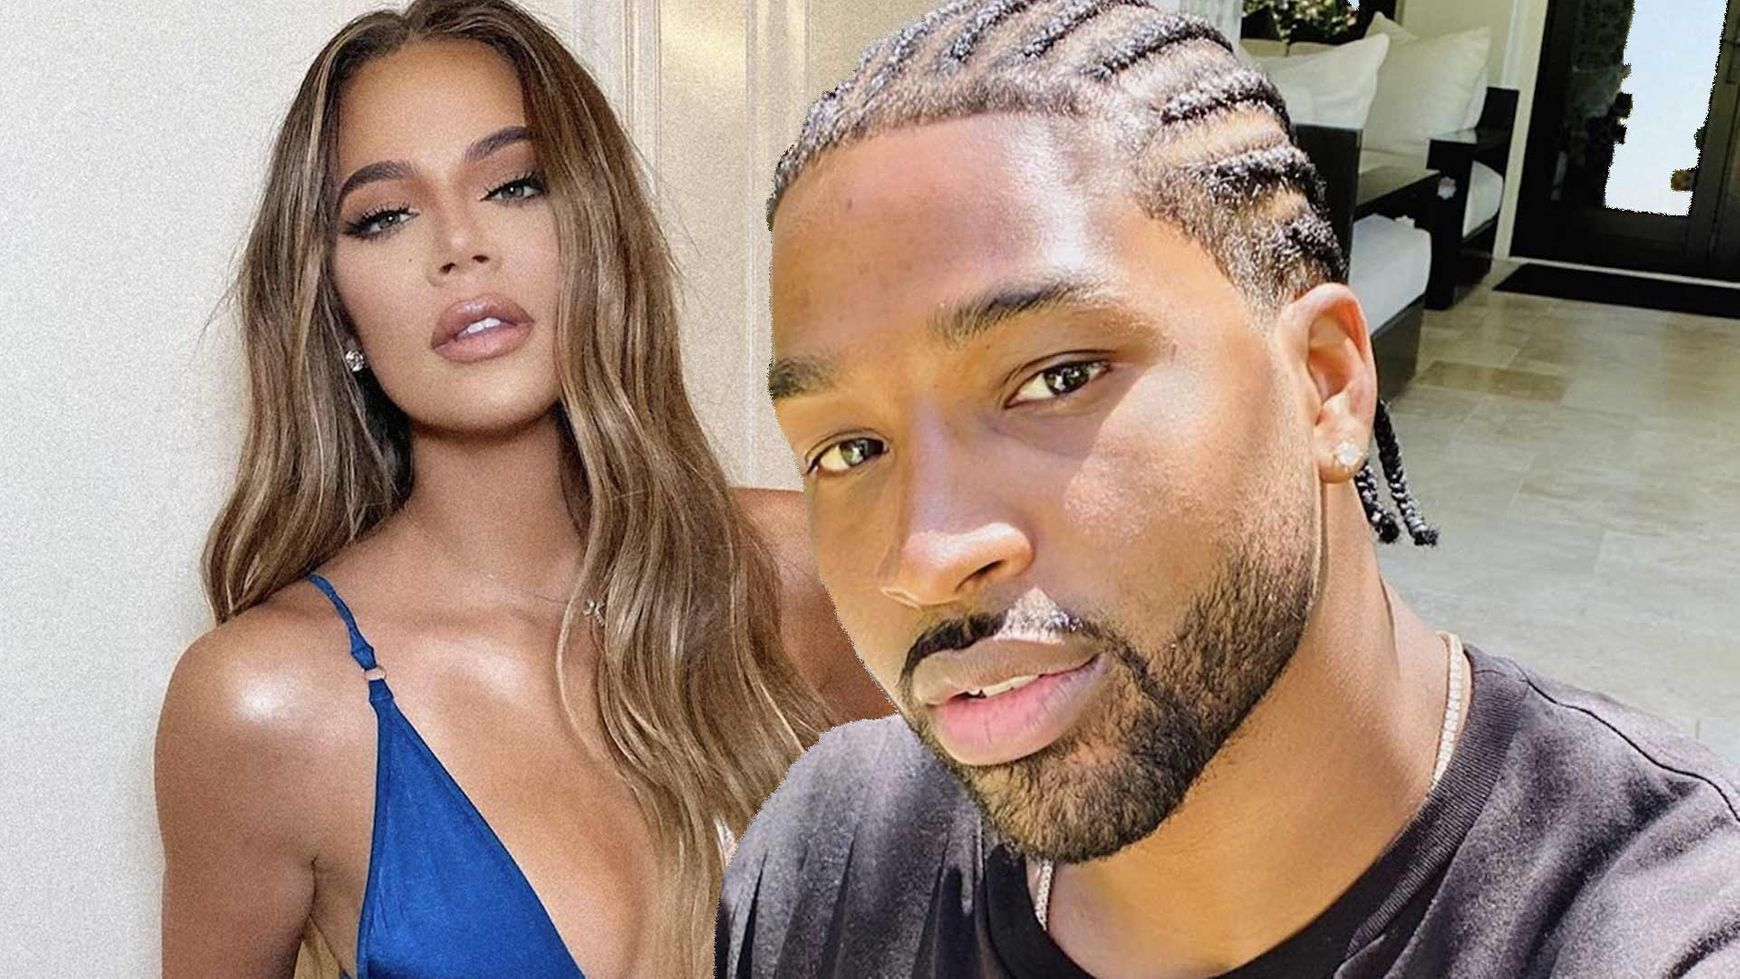 Tristan Thompson Is Spotting Enjoying A Moment With This Lady In Boston – Khloe Kardashian And Baby True Are Thousands Of Miles Away